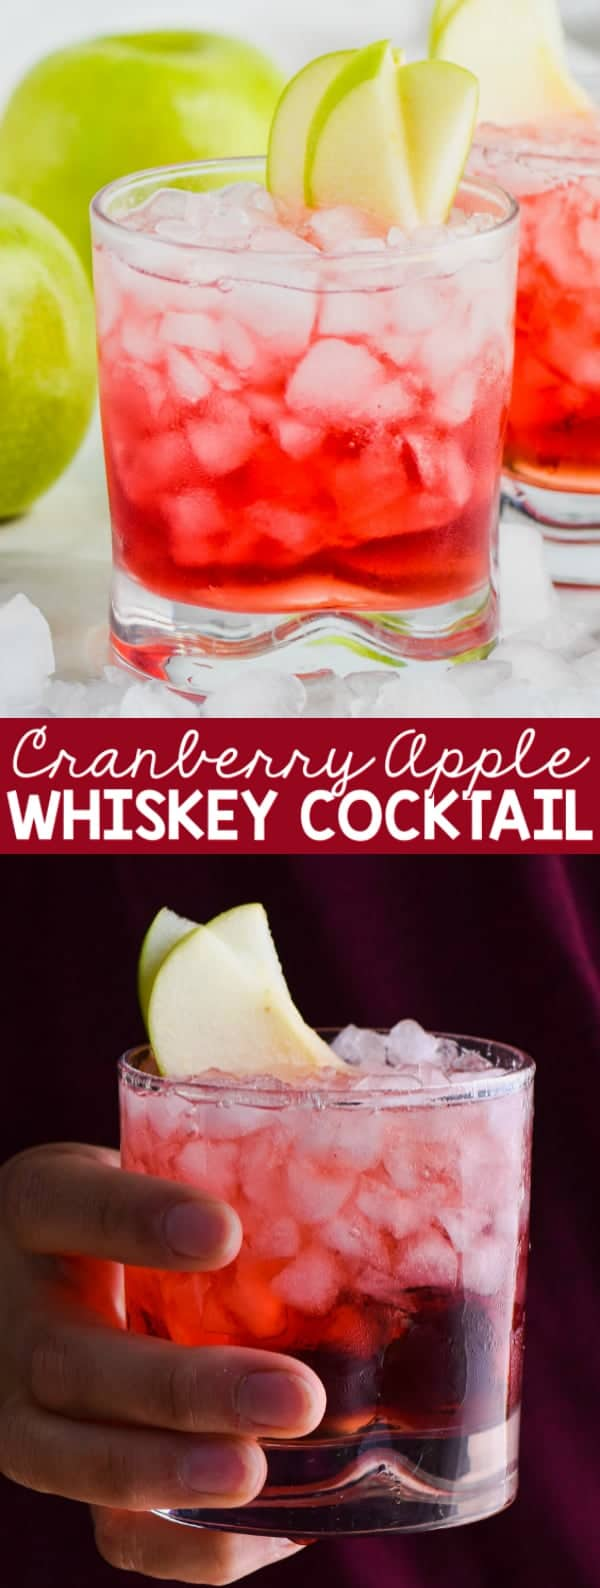 cranberry apple whiskey cocktail garnished with apple